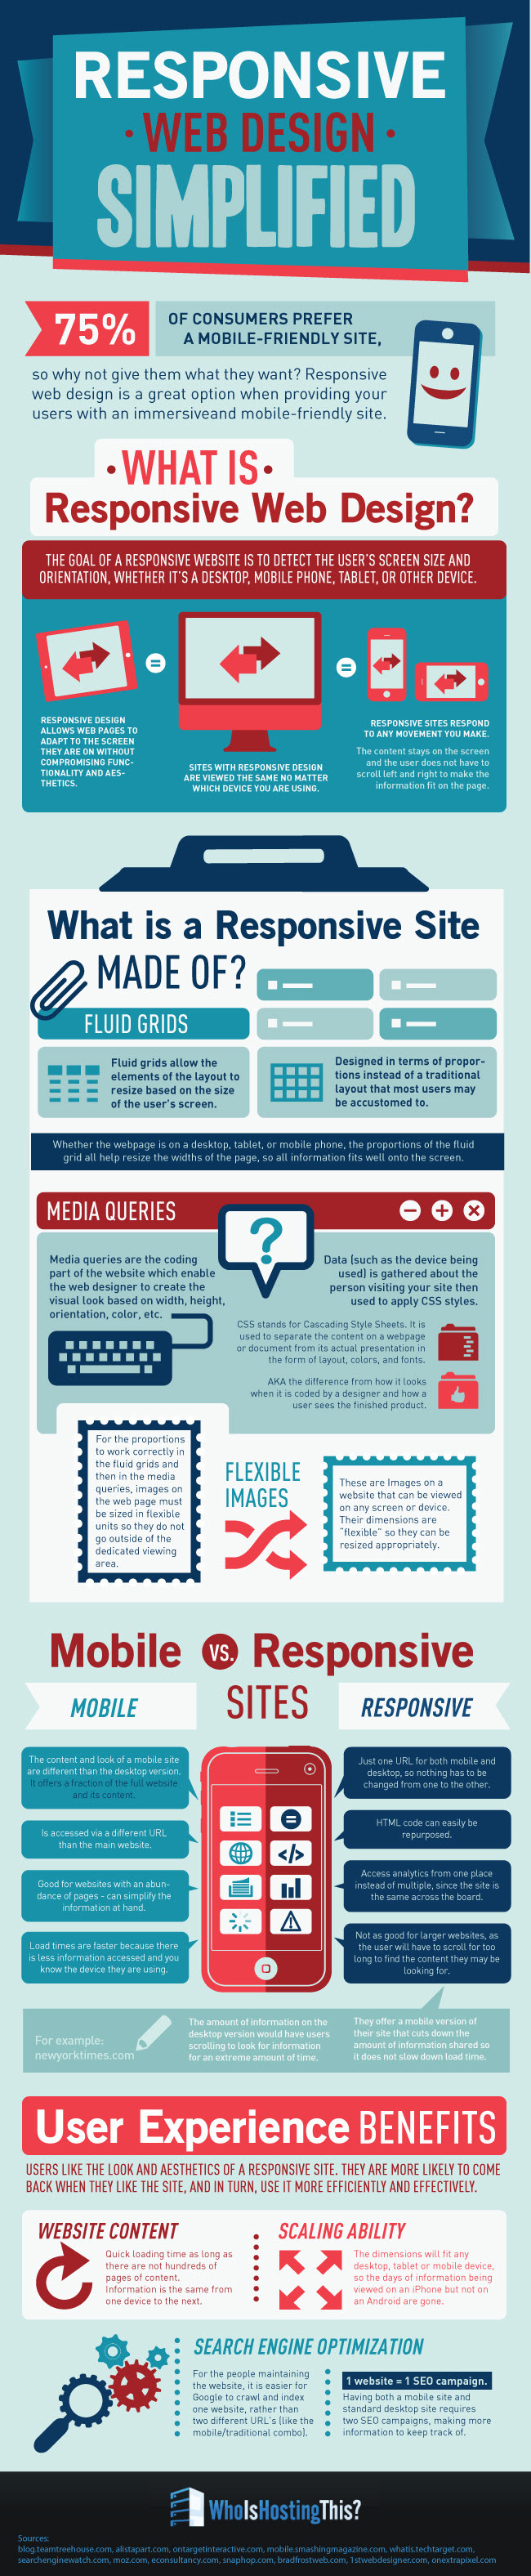 Infographic: Keeping it Simple with Responsive Web Design [Infographic]